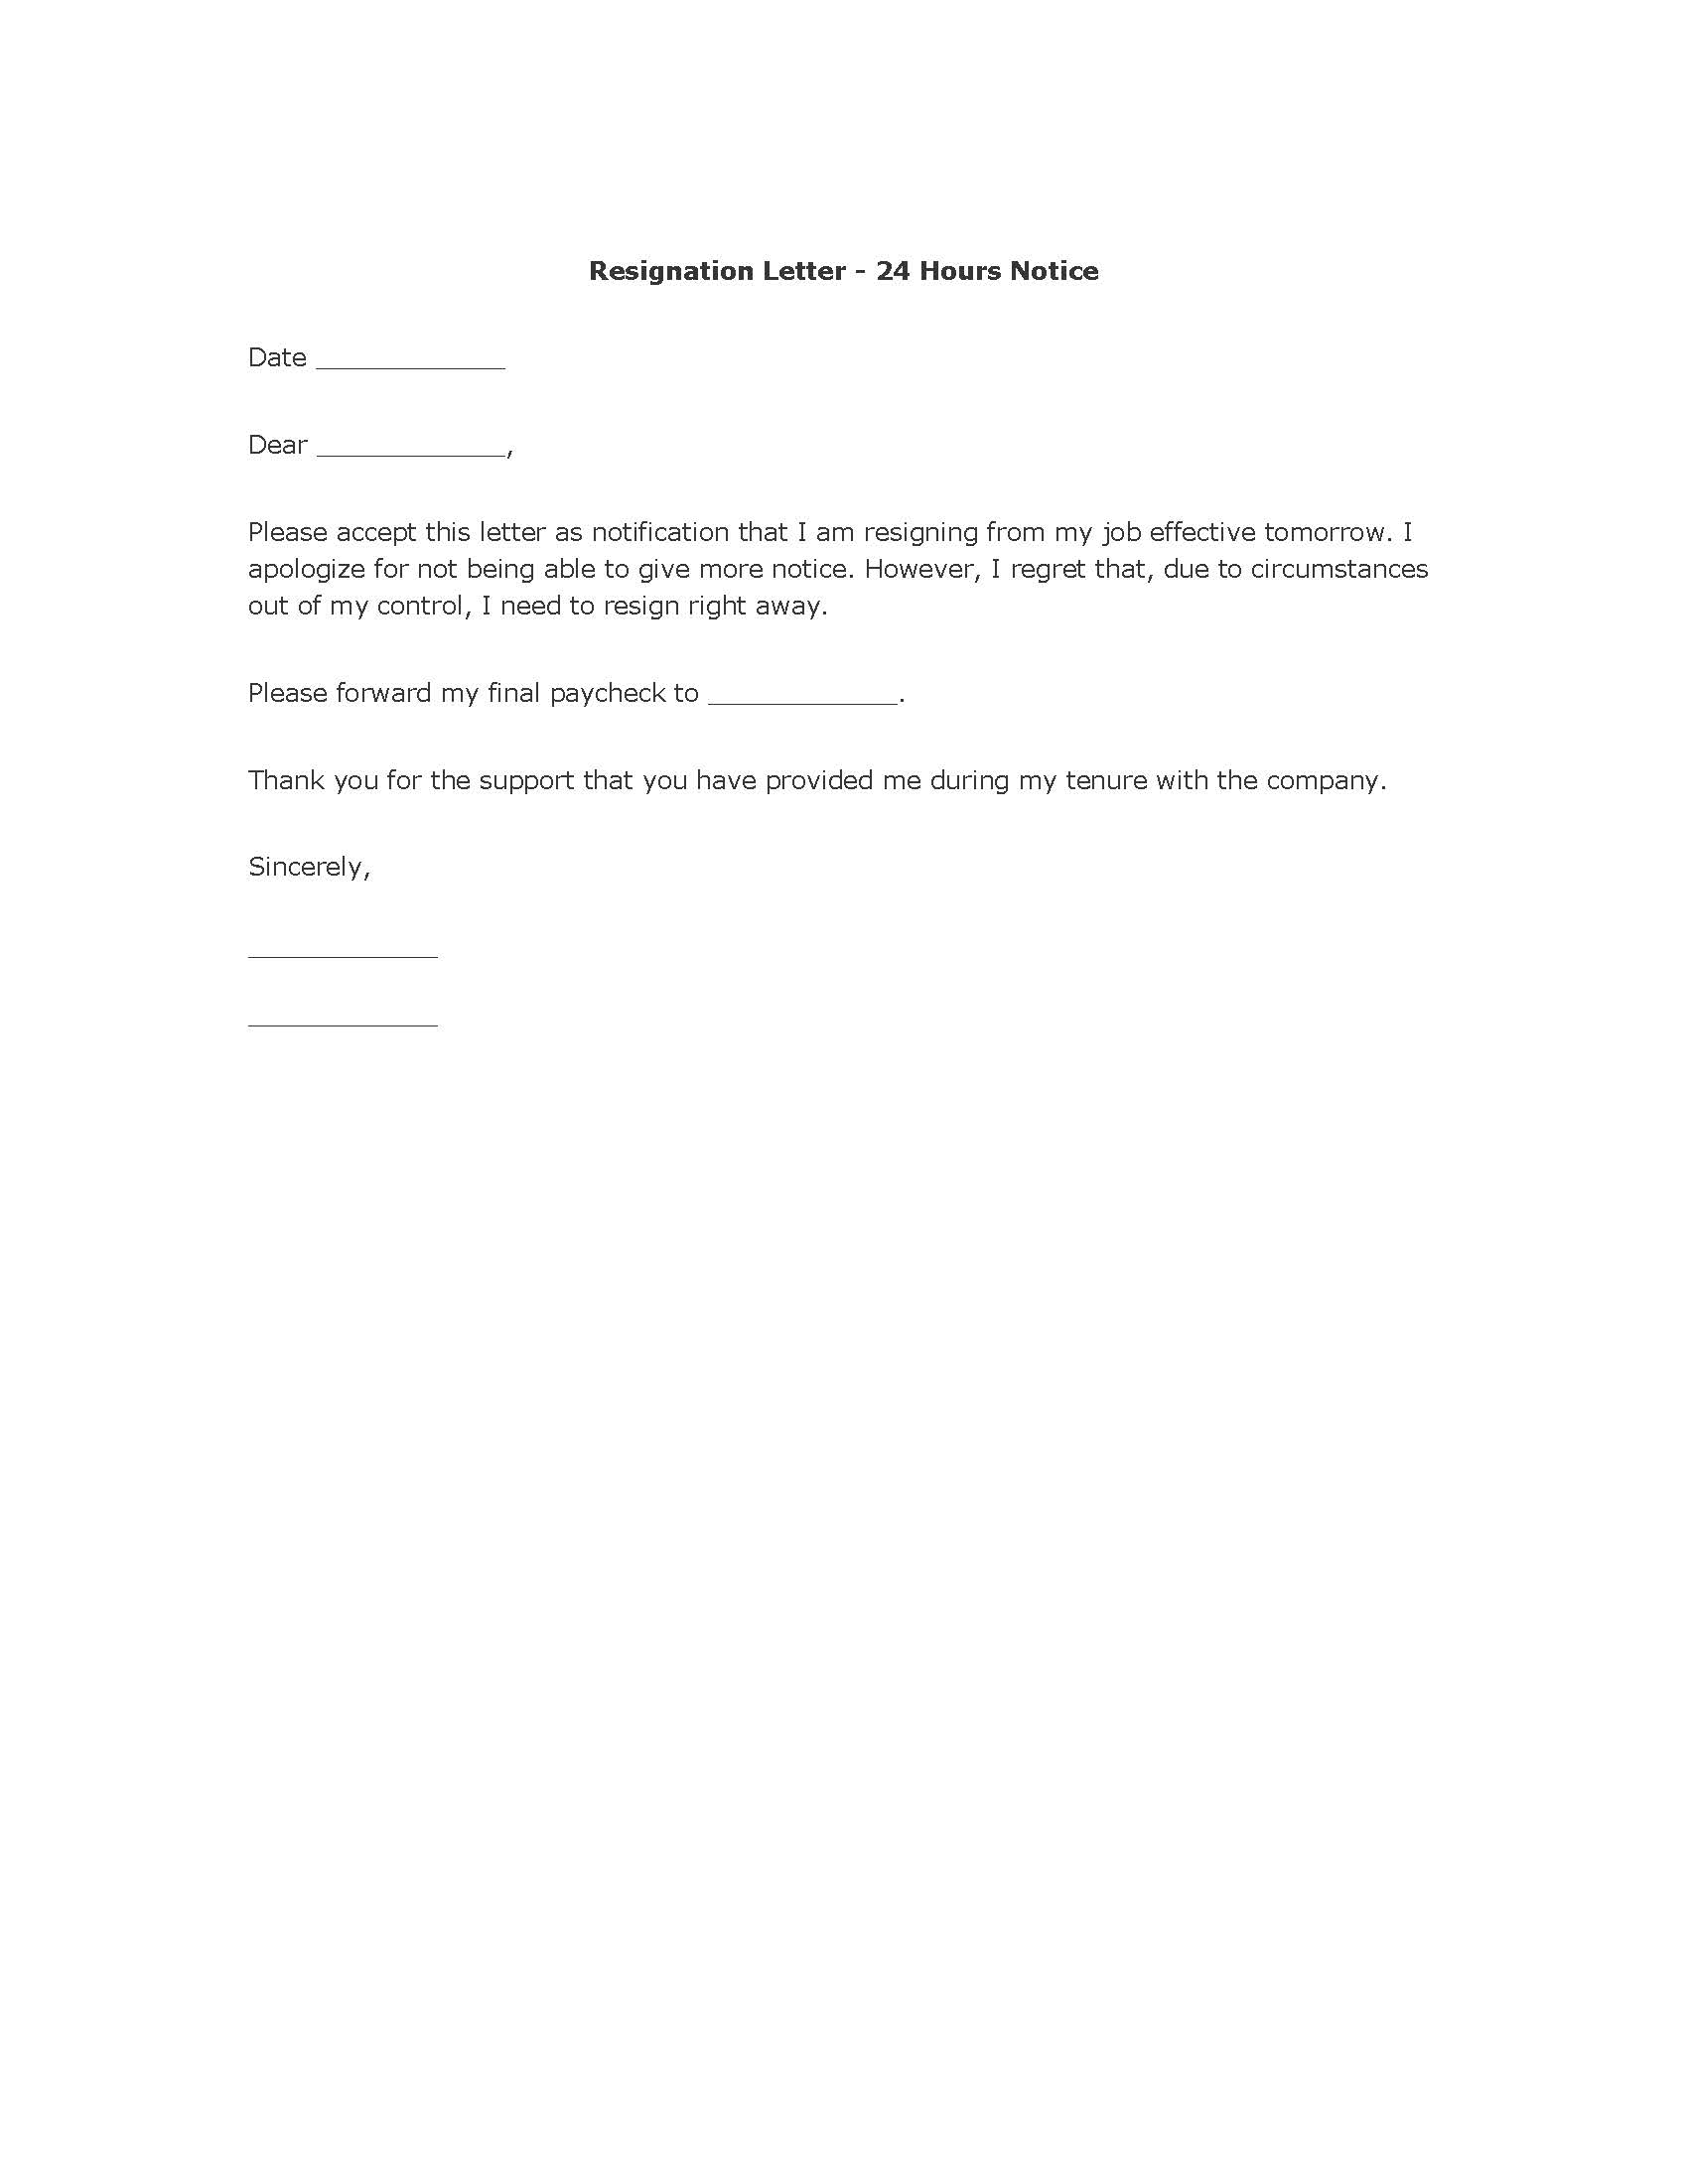 Letter Of Resignation Template Word | New Calendar Template Site